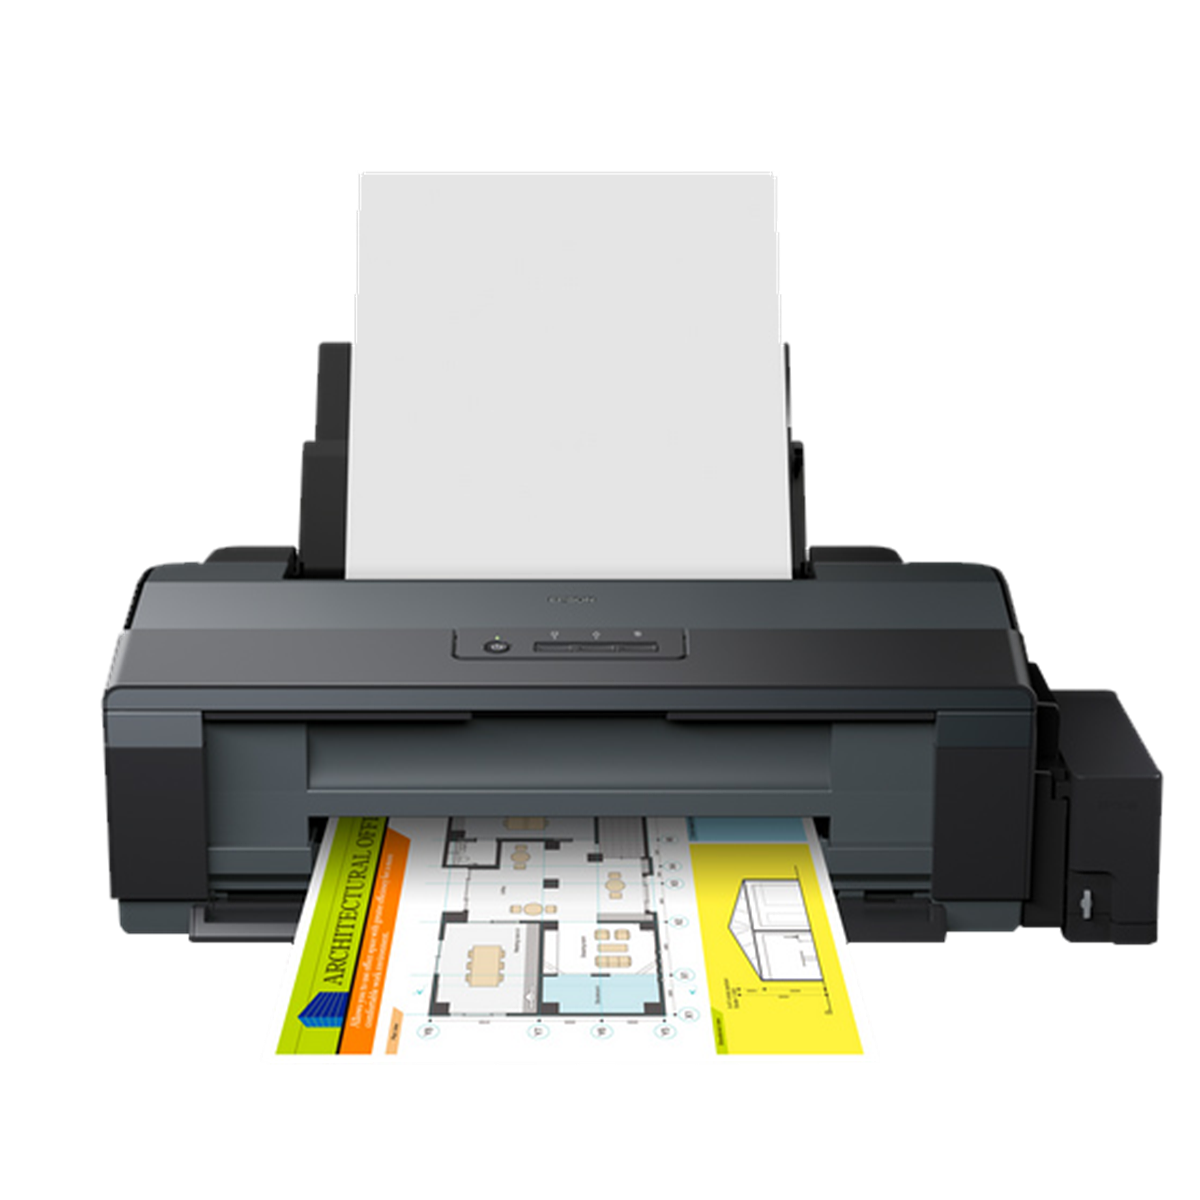 Epson Introduces Ecotank Printer Range With Two Years Of Ink And Low Canon G3000 All In One Wi Fi Cost Refill Bottles Digital Photography Review